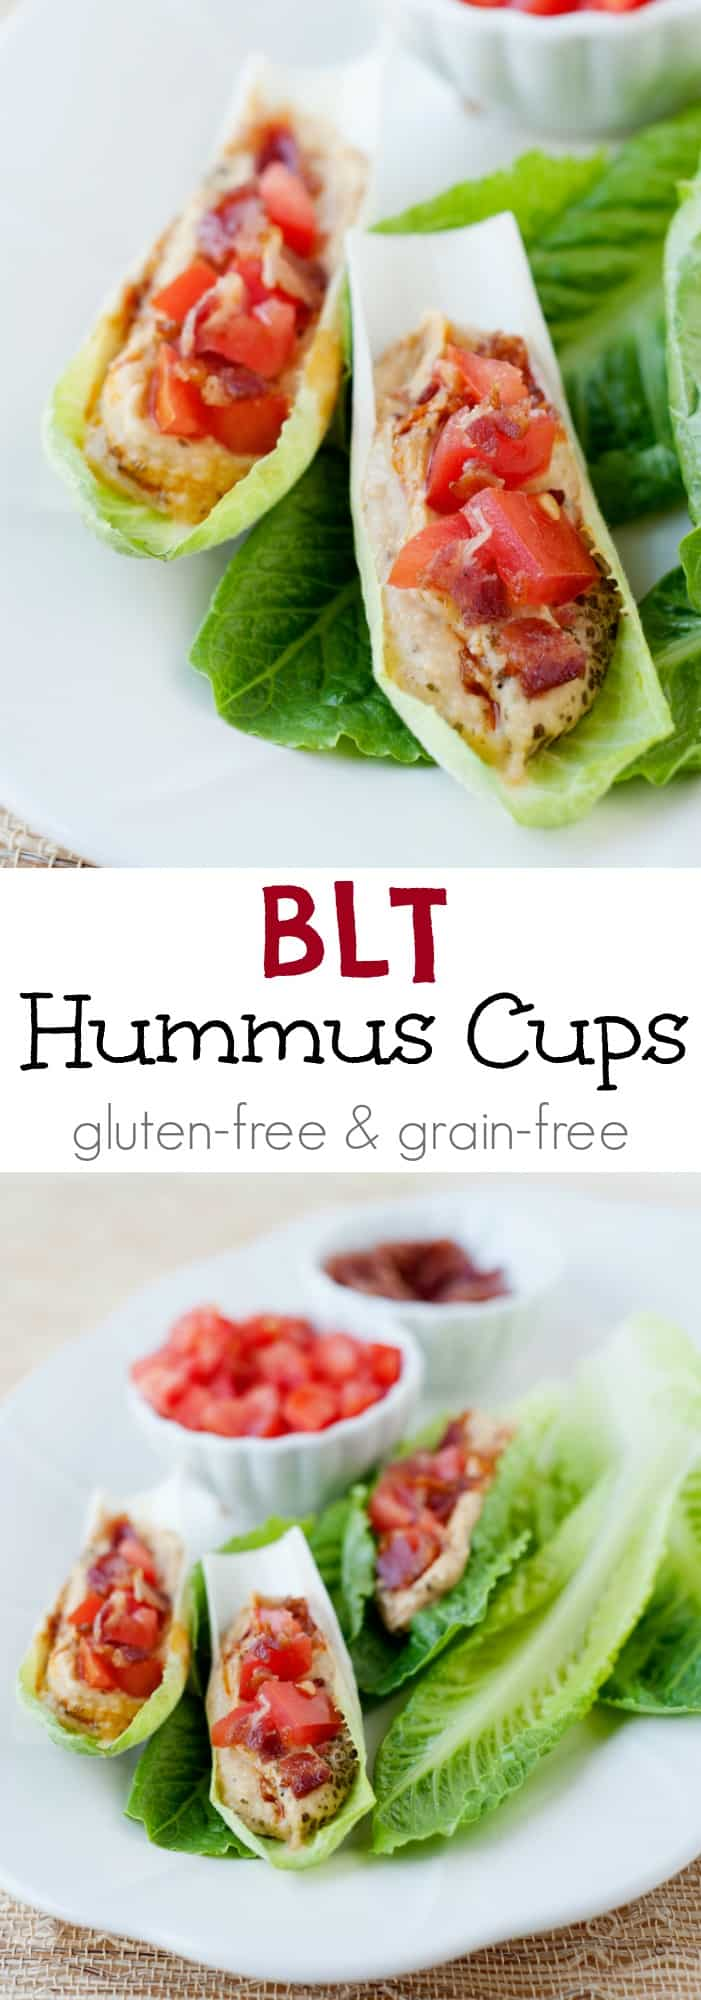 Reinvent the BLT with these bacon, lettuce, and tomato hummus cups! They make the perfect lunch or healthy snack.